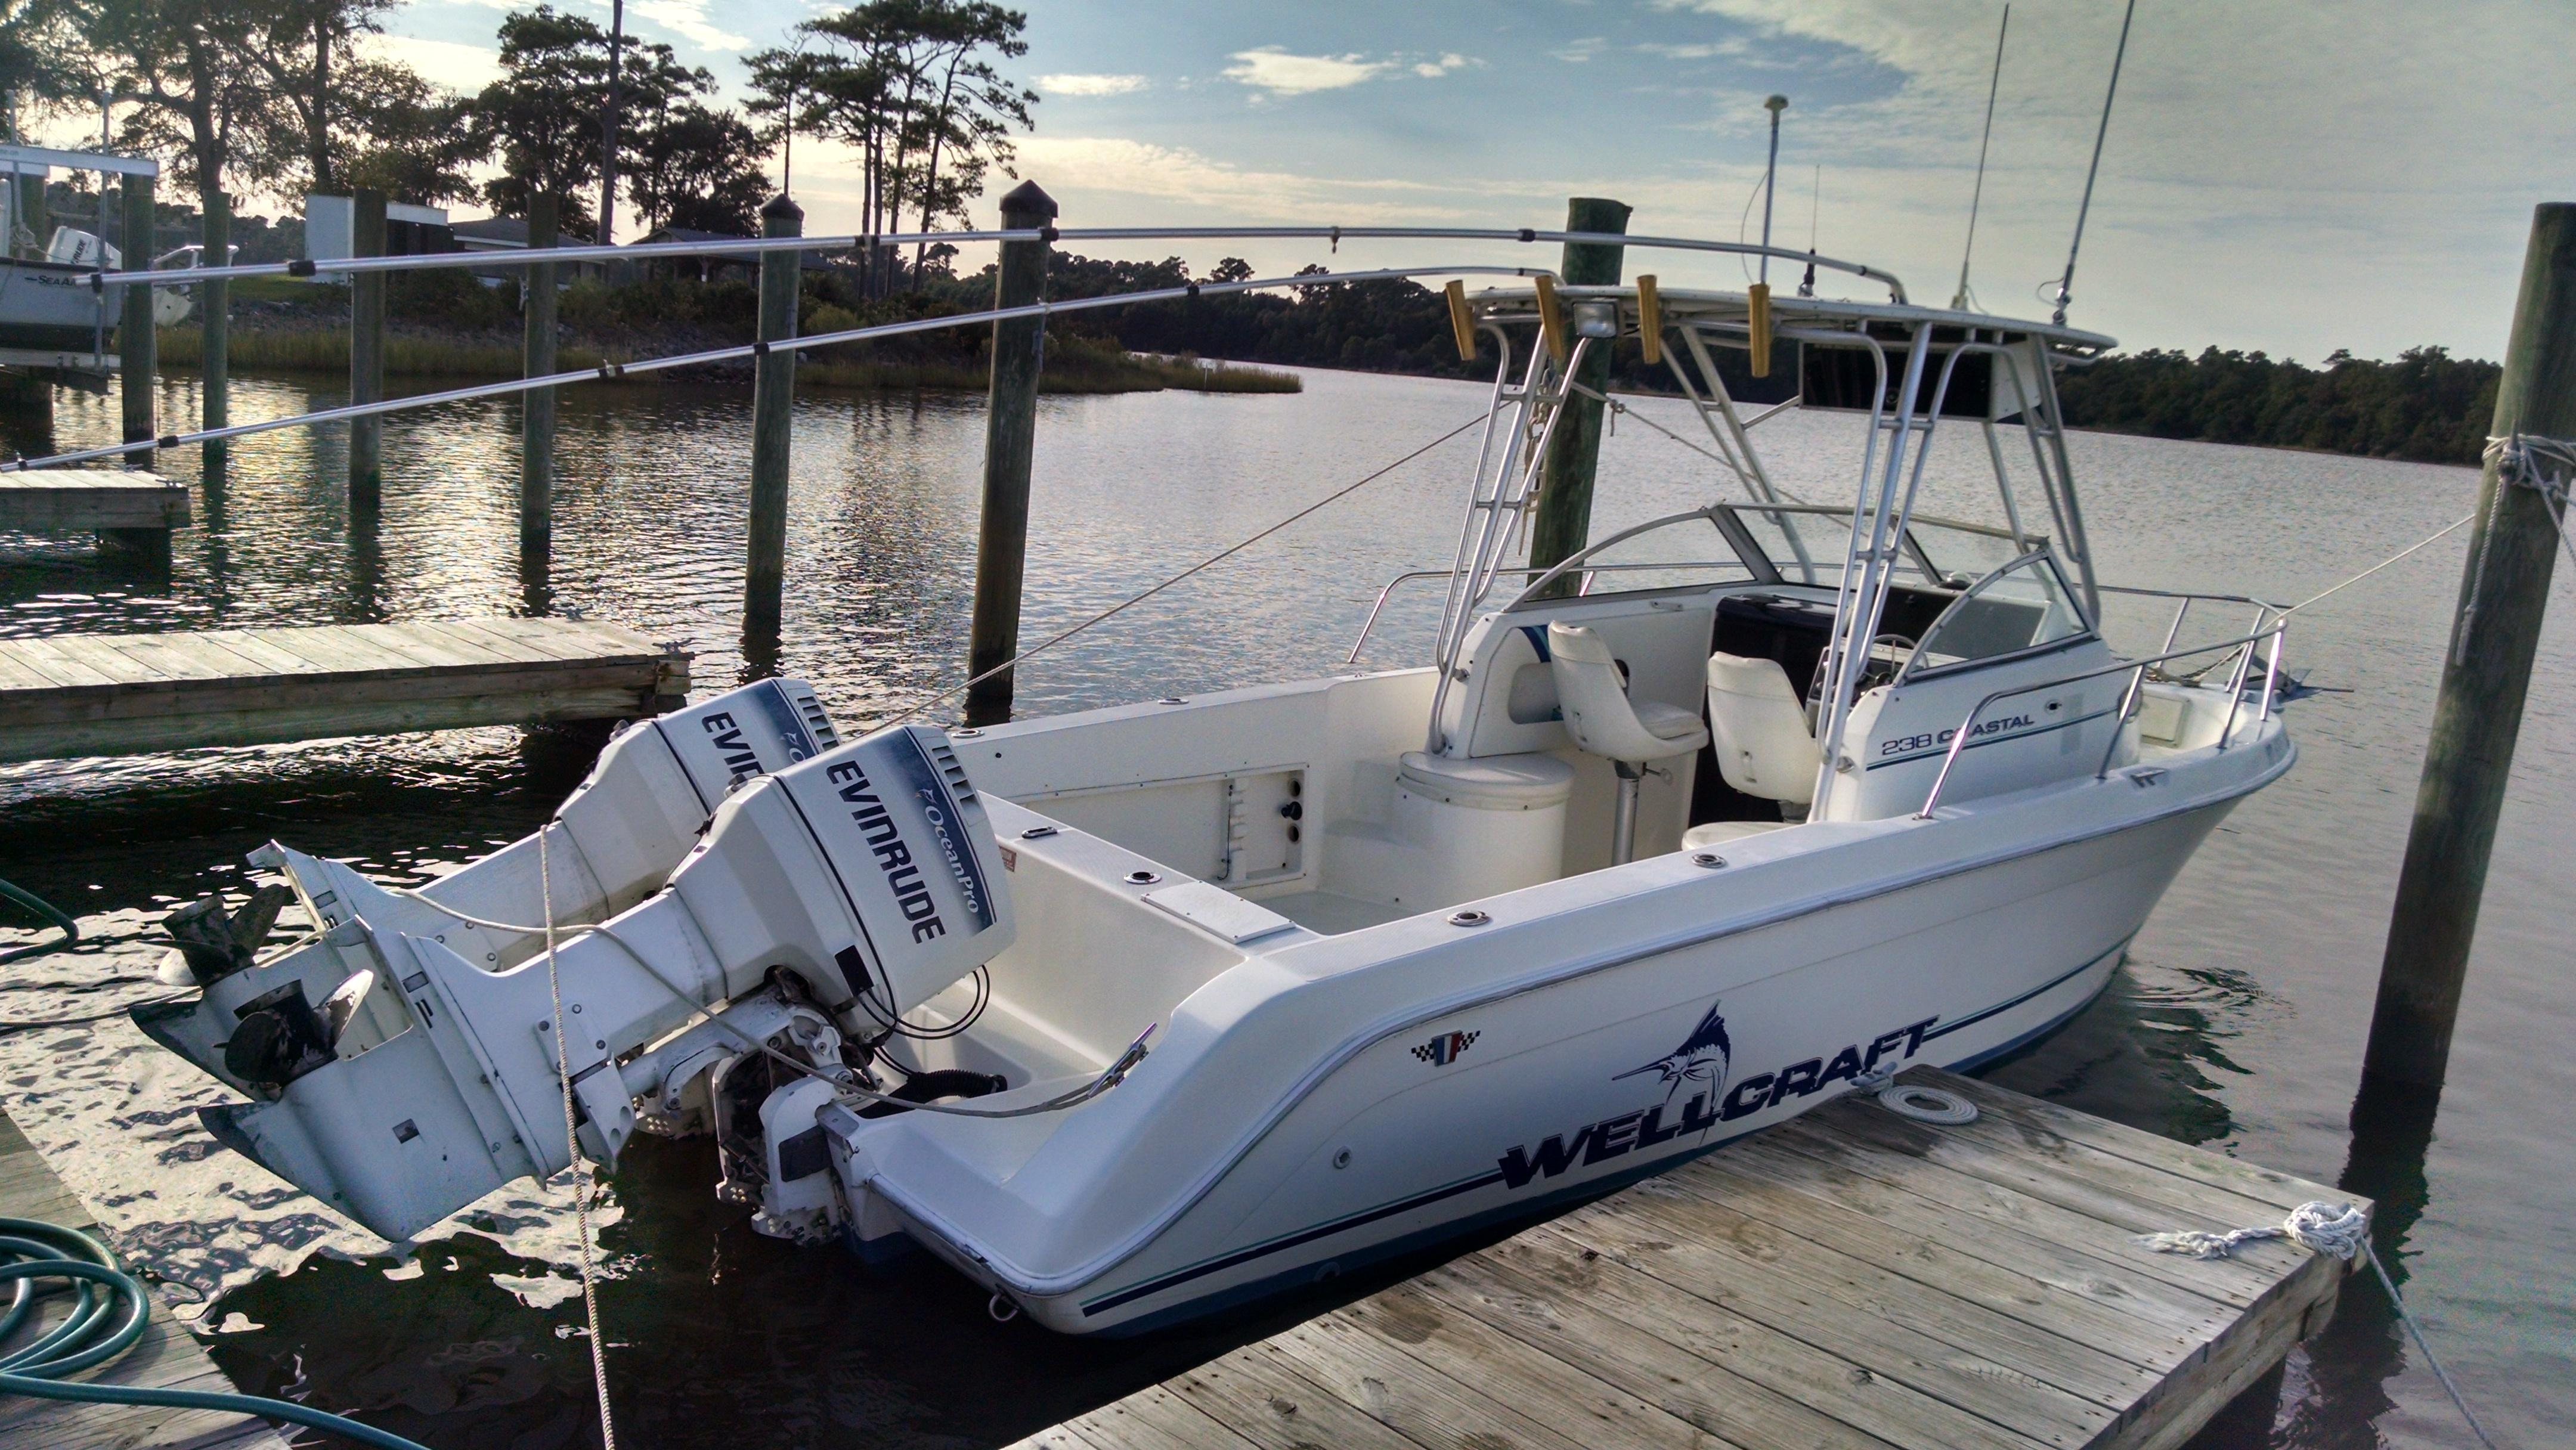 Wellcraft 24 Wiring Diagram Free Download Venture Trailer 1995 238 Coastal Power Boat For Sale Www Yachtworld Com At